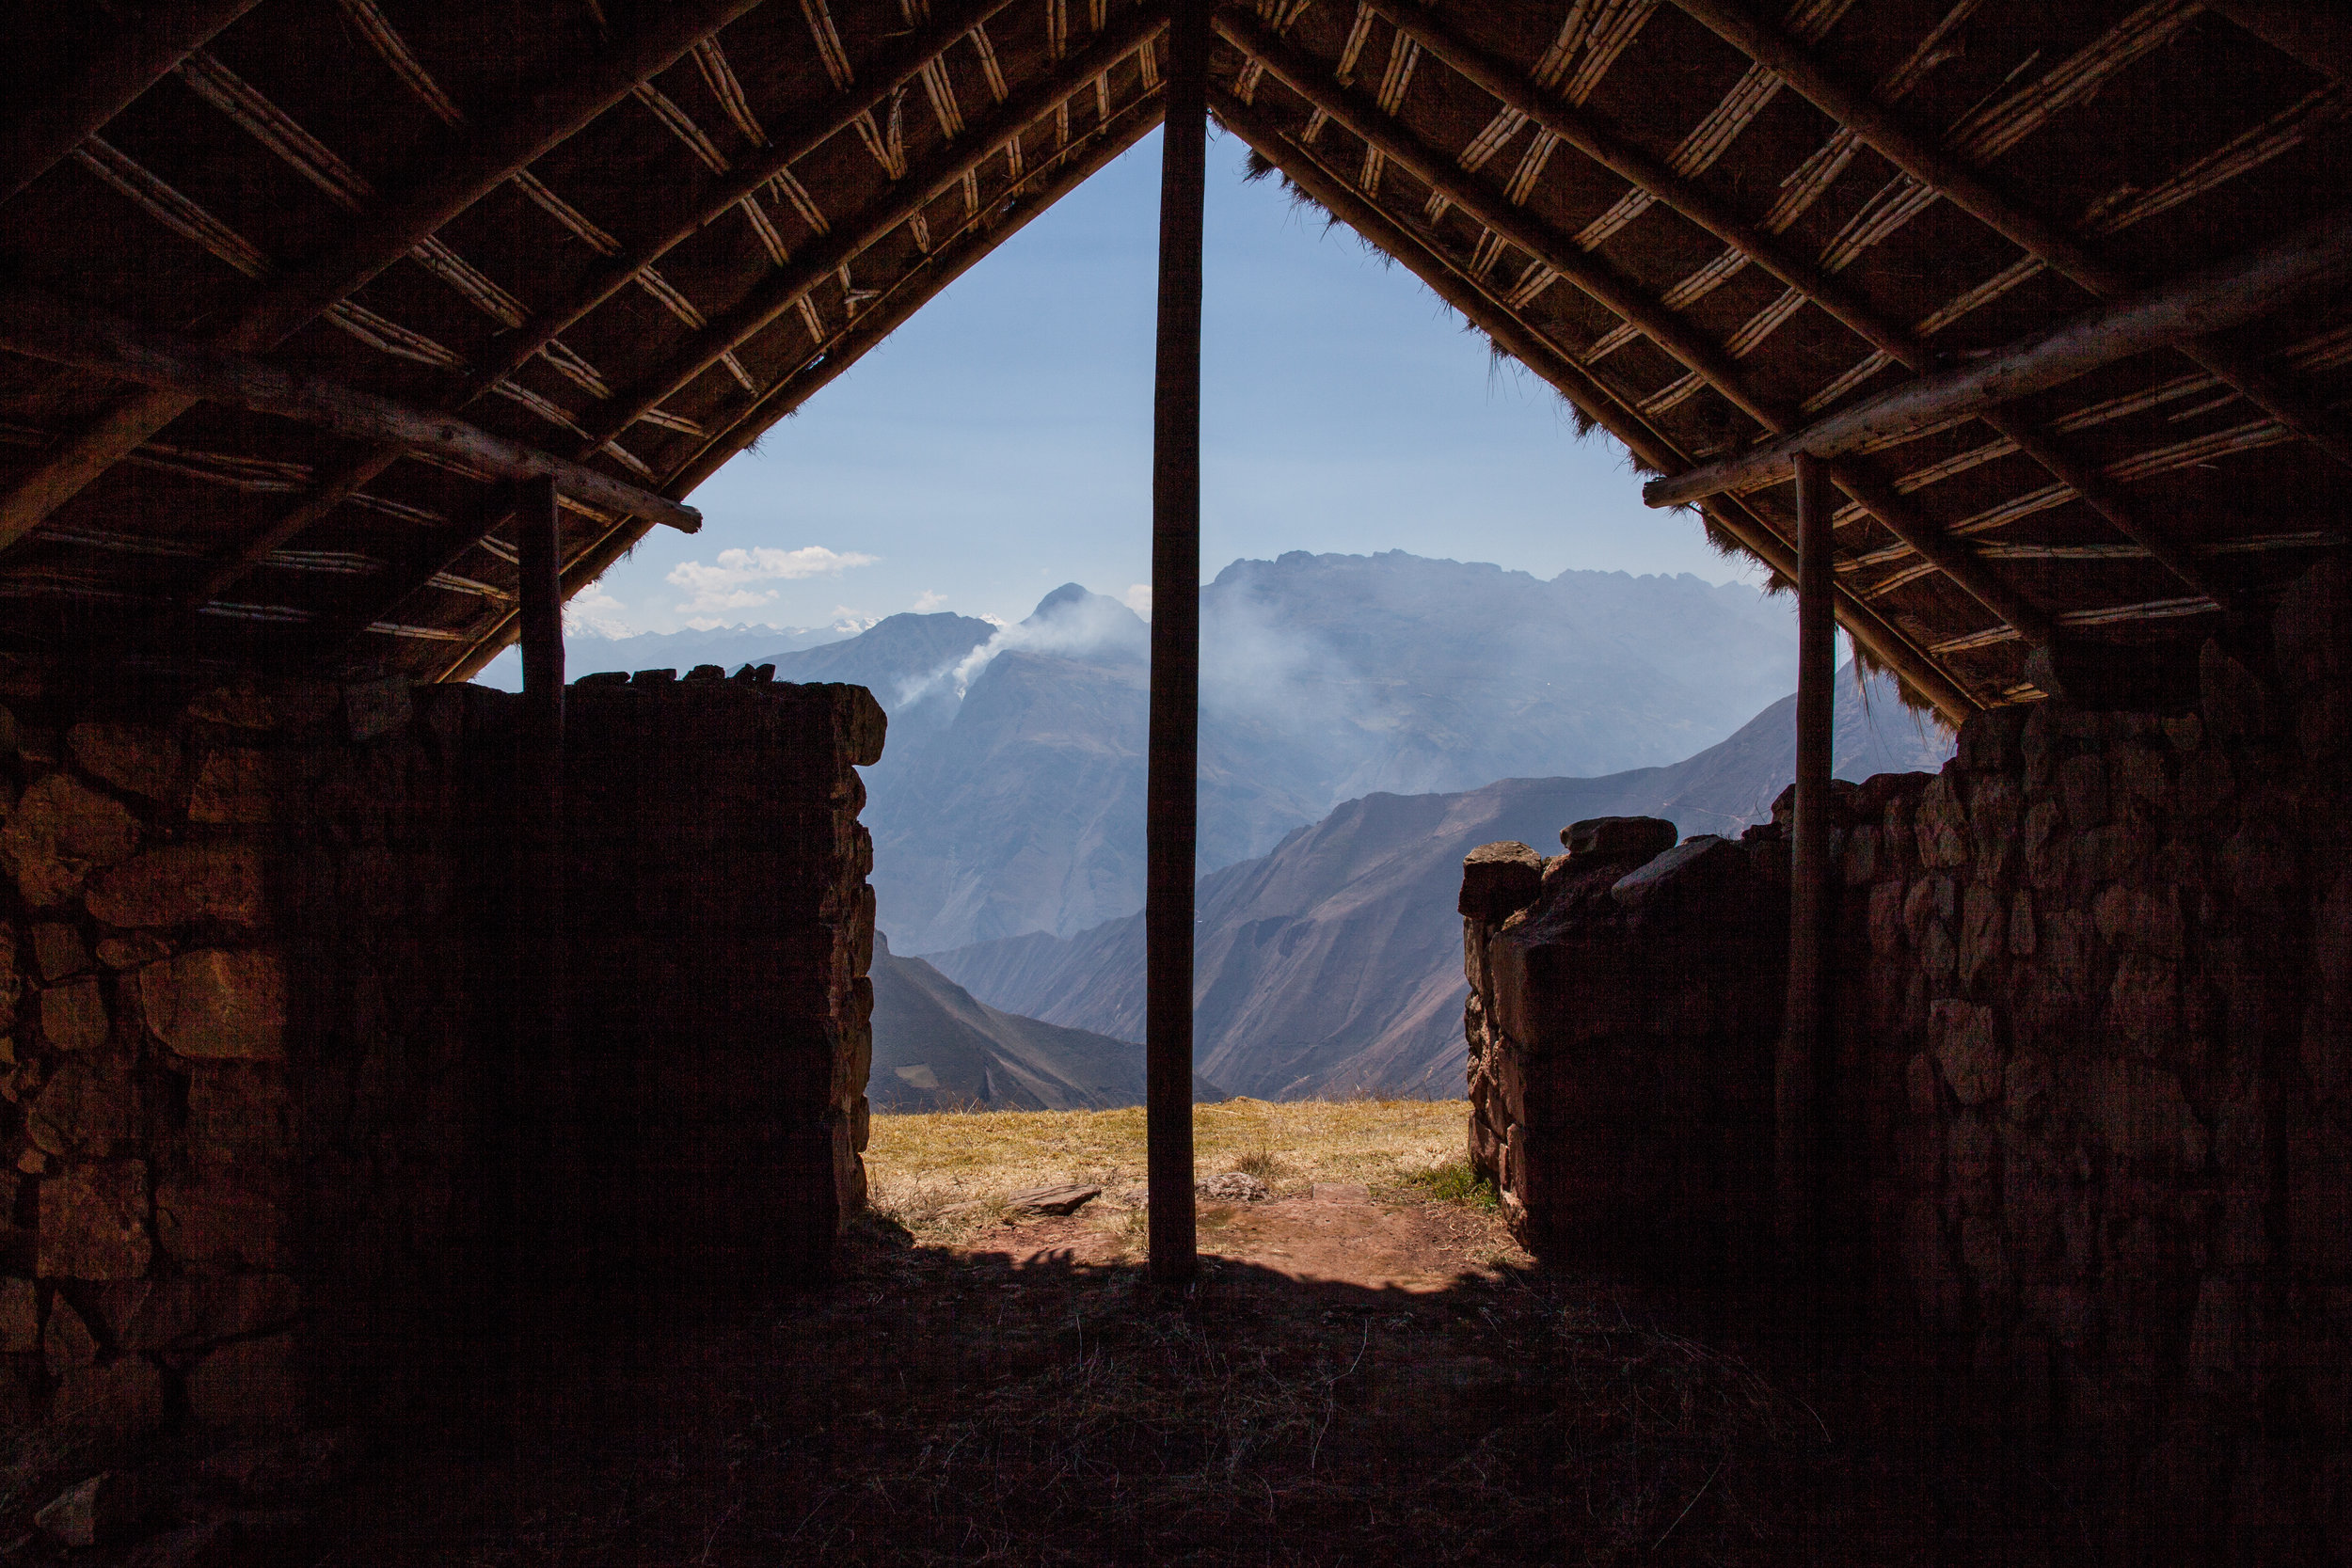 View from inside a hut on top of Sóndor in Peru.